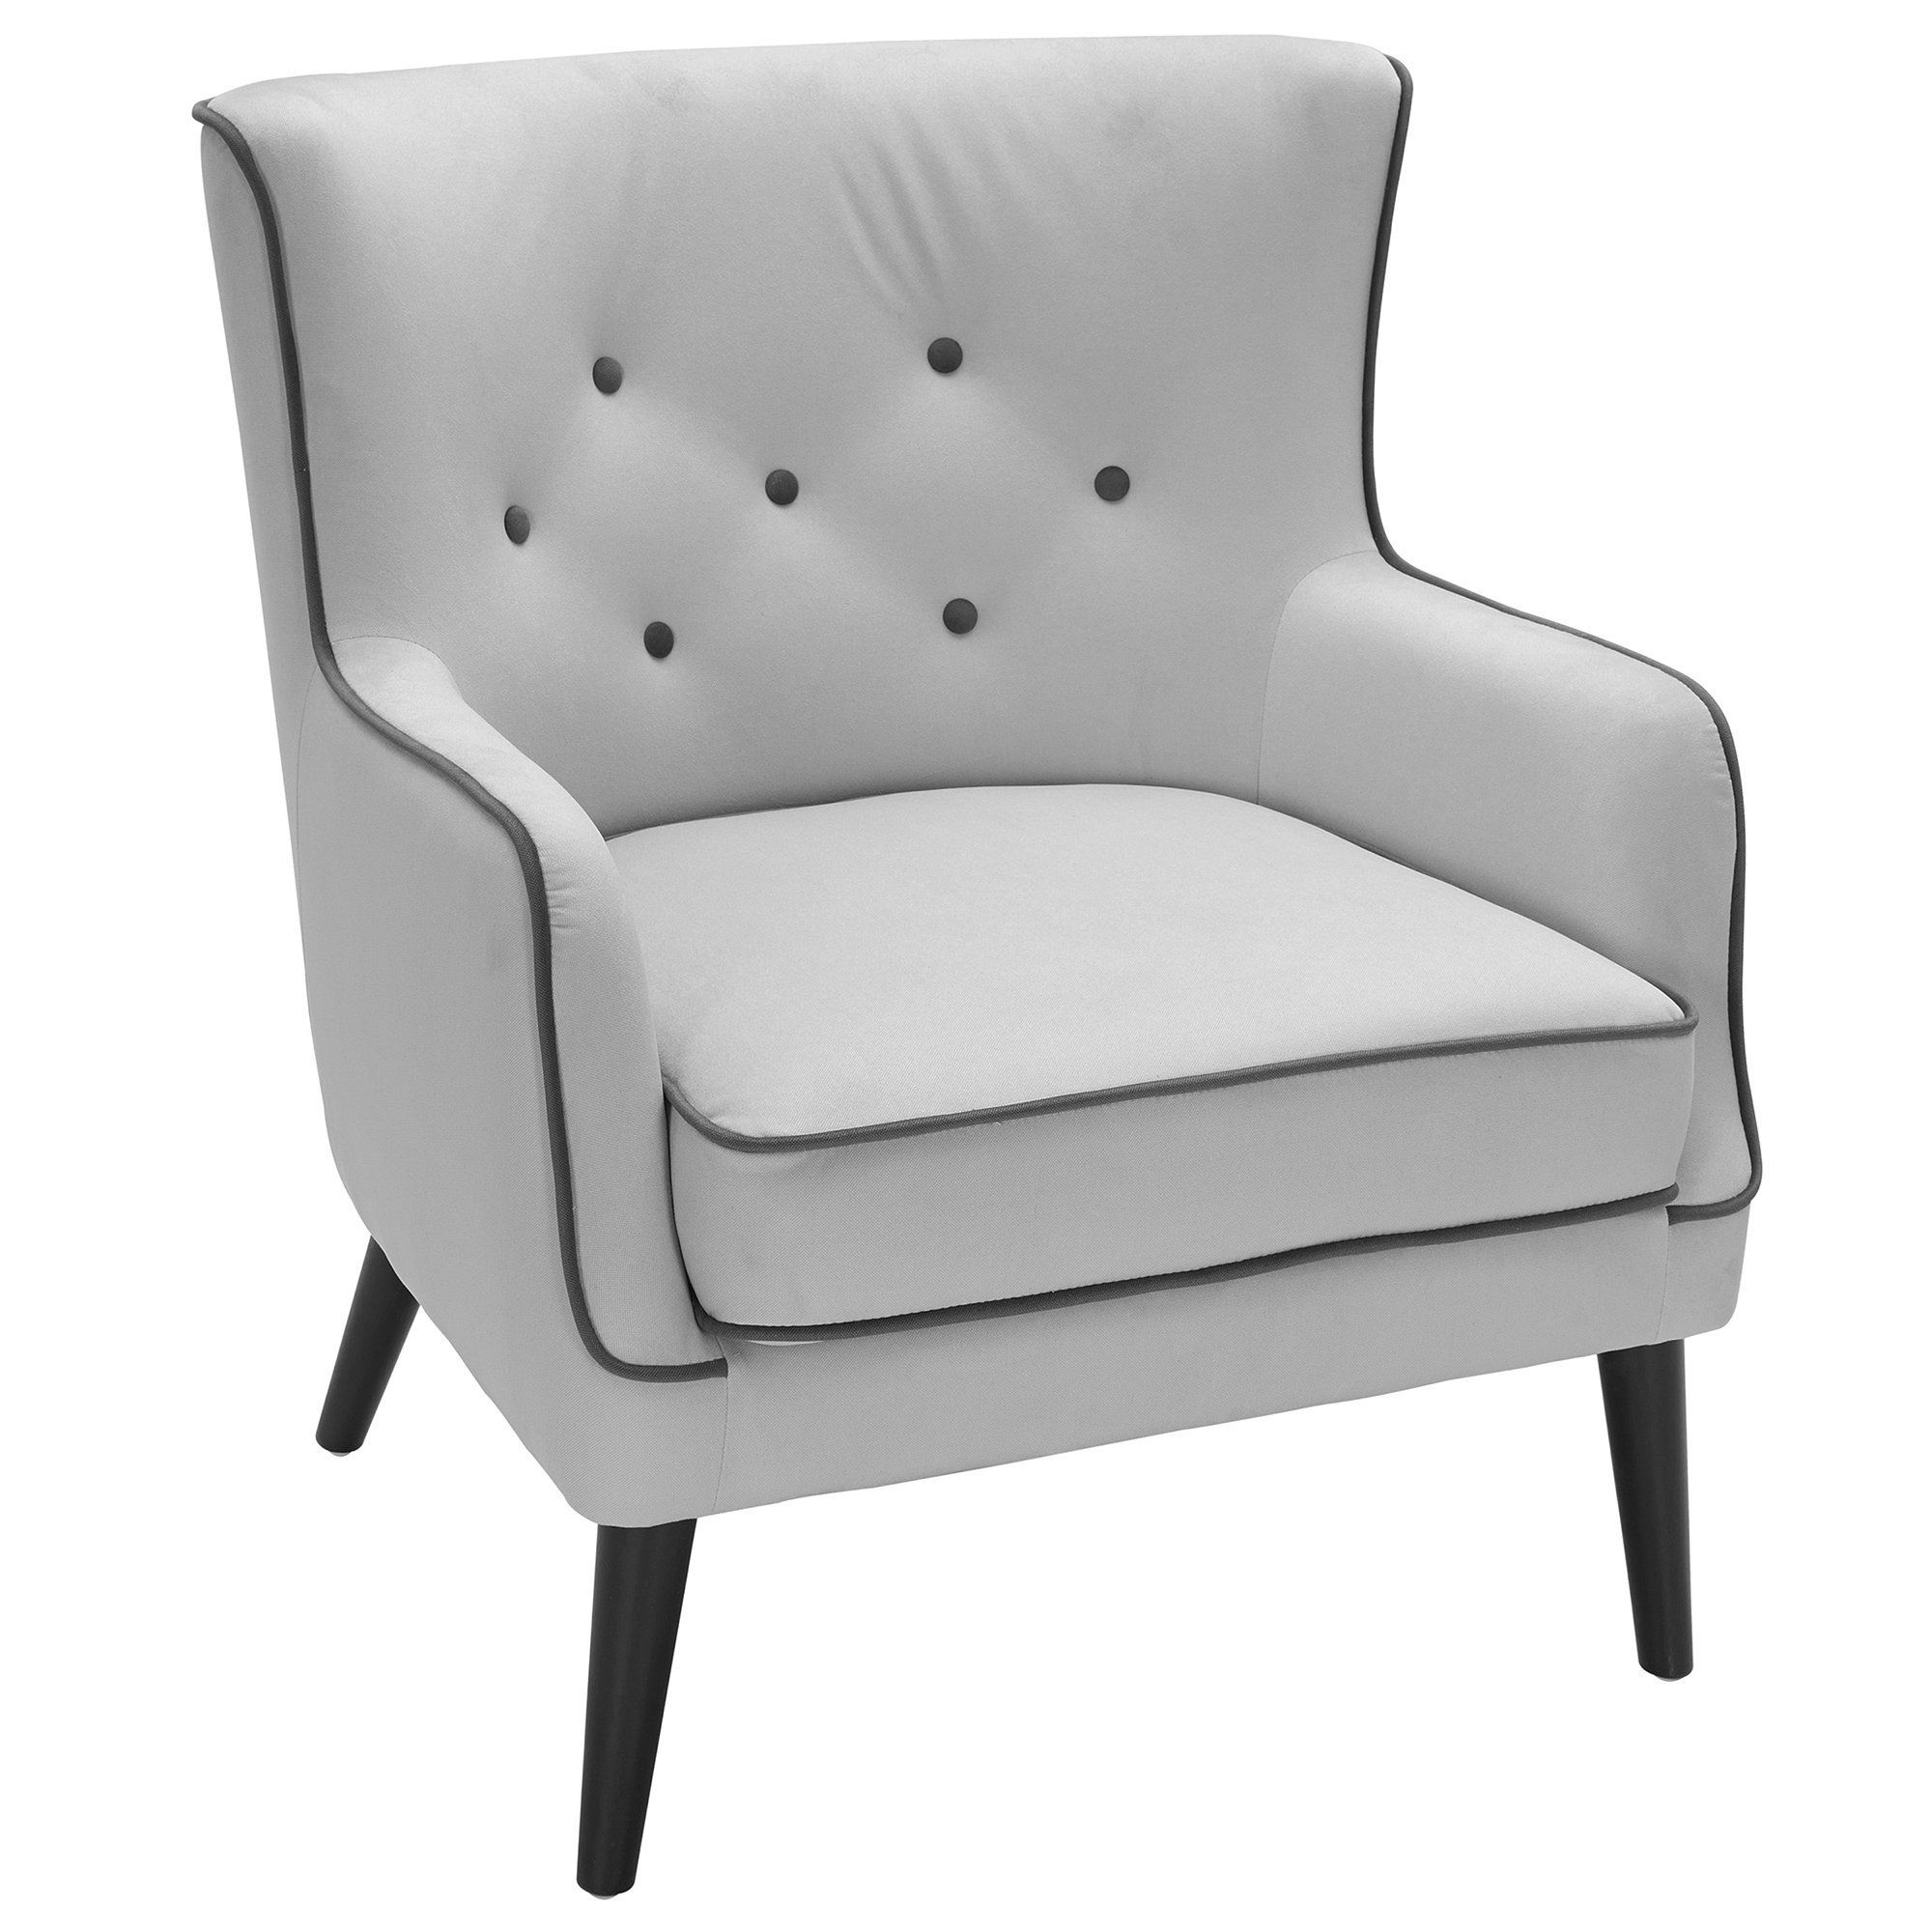 Sedgwick Accent Chair Mid Century Modern Accent Chairs Grey